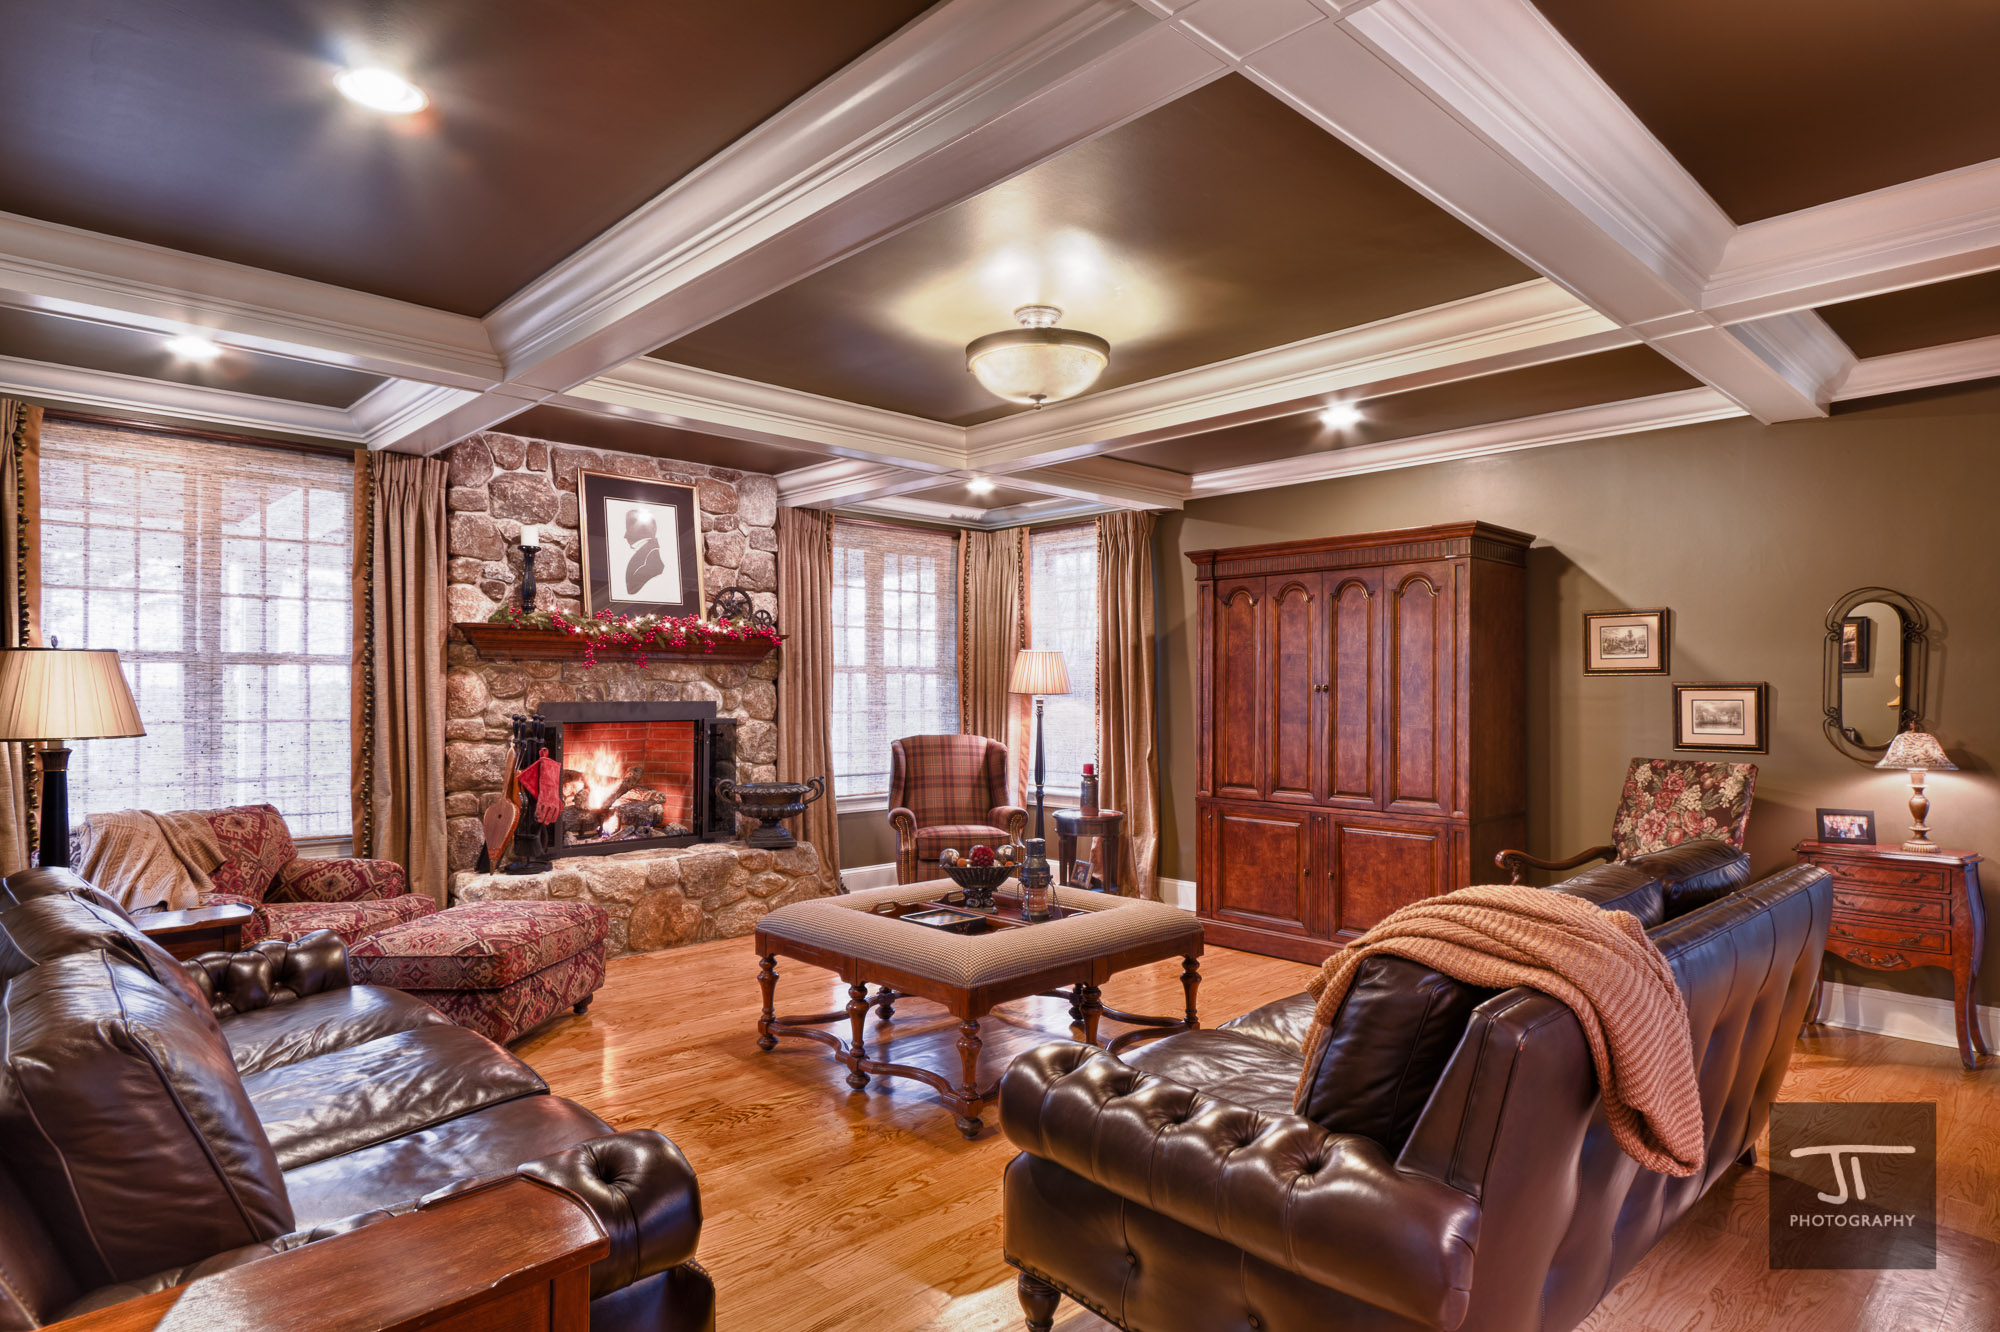 Westborough Mansion Family room – Jeremiah True graphy